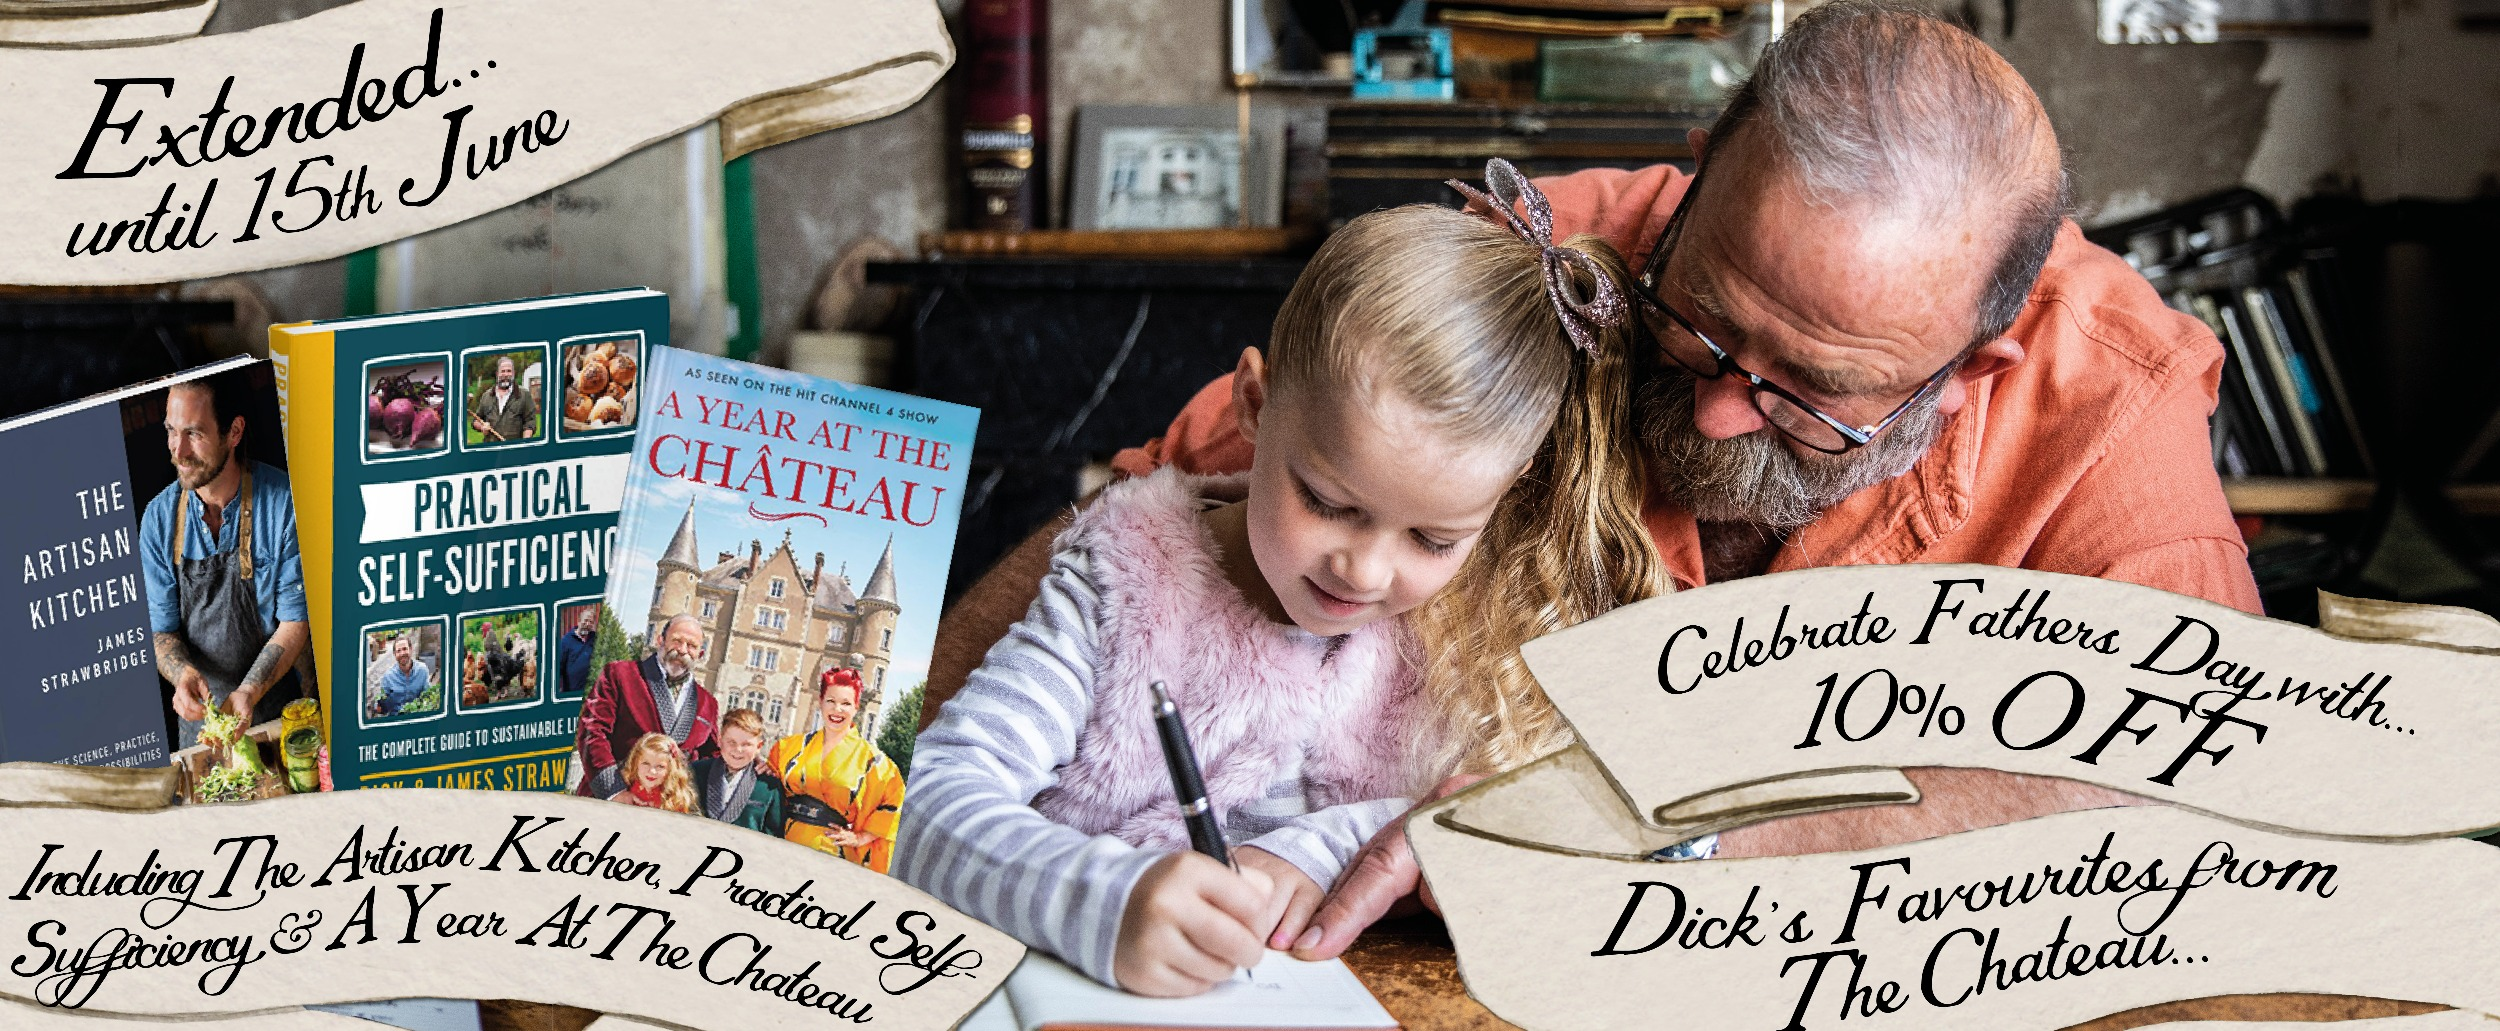 Celebrate Fathers Day with 10% off Dick's favourites and our brand new Truffle Hunter collection & Personalised Chocolate Bars!